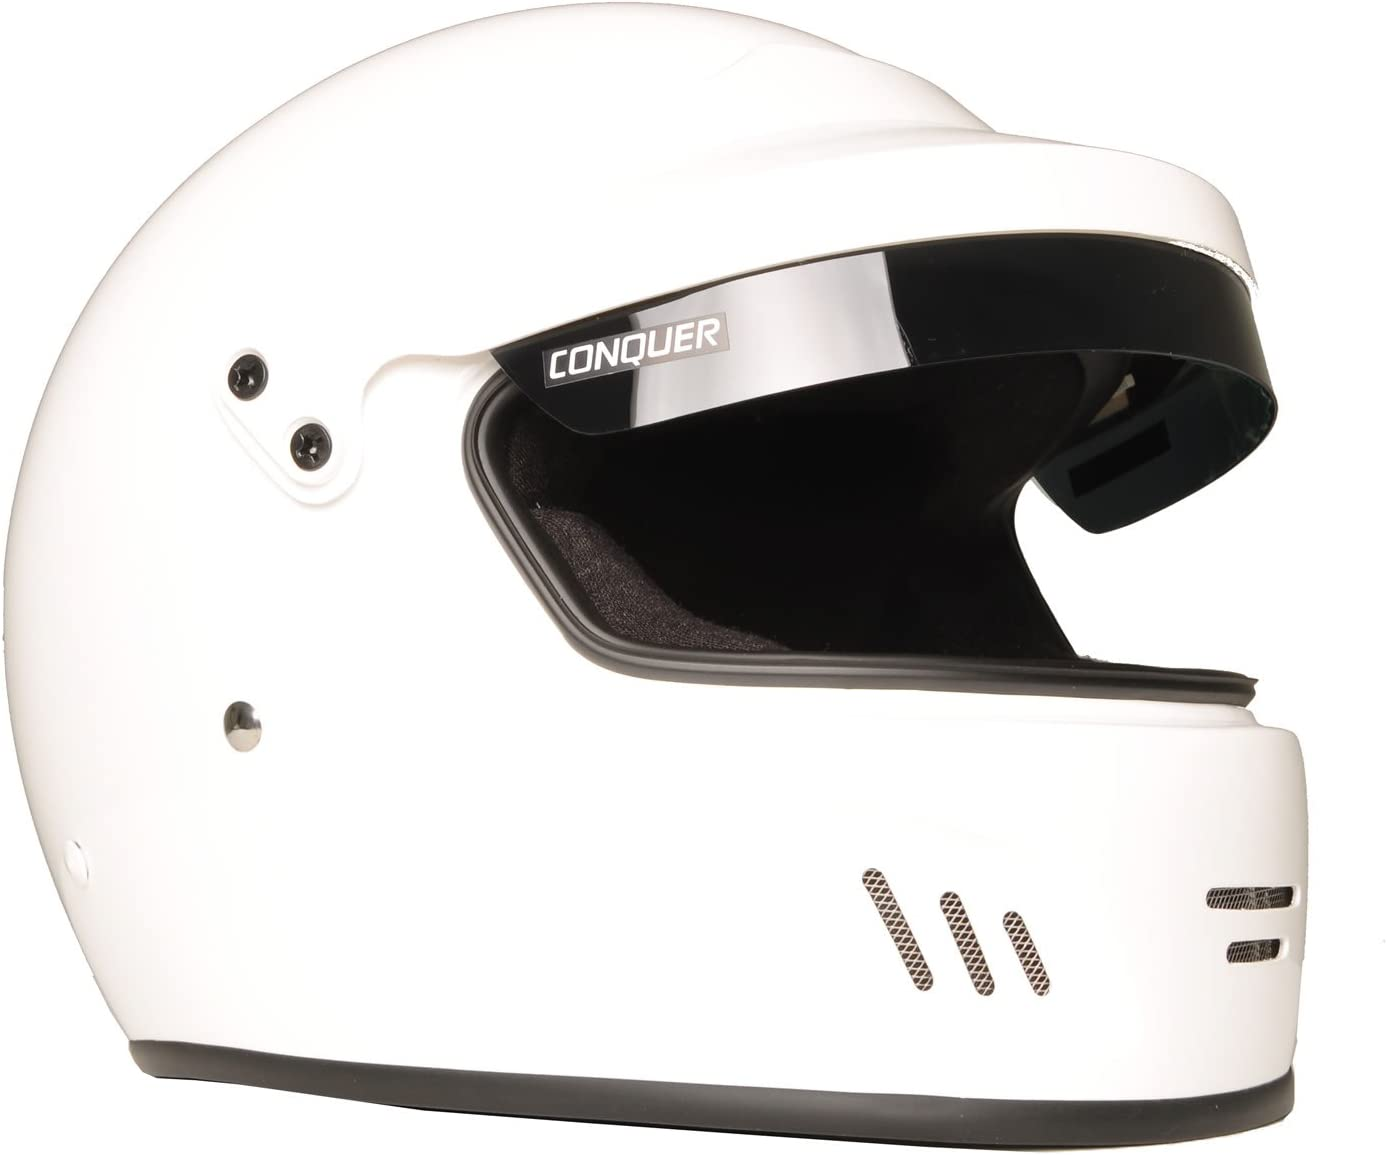 Conquer Full Face Rally Racing Helmet